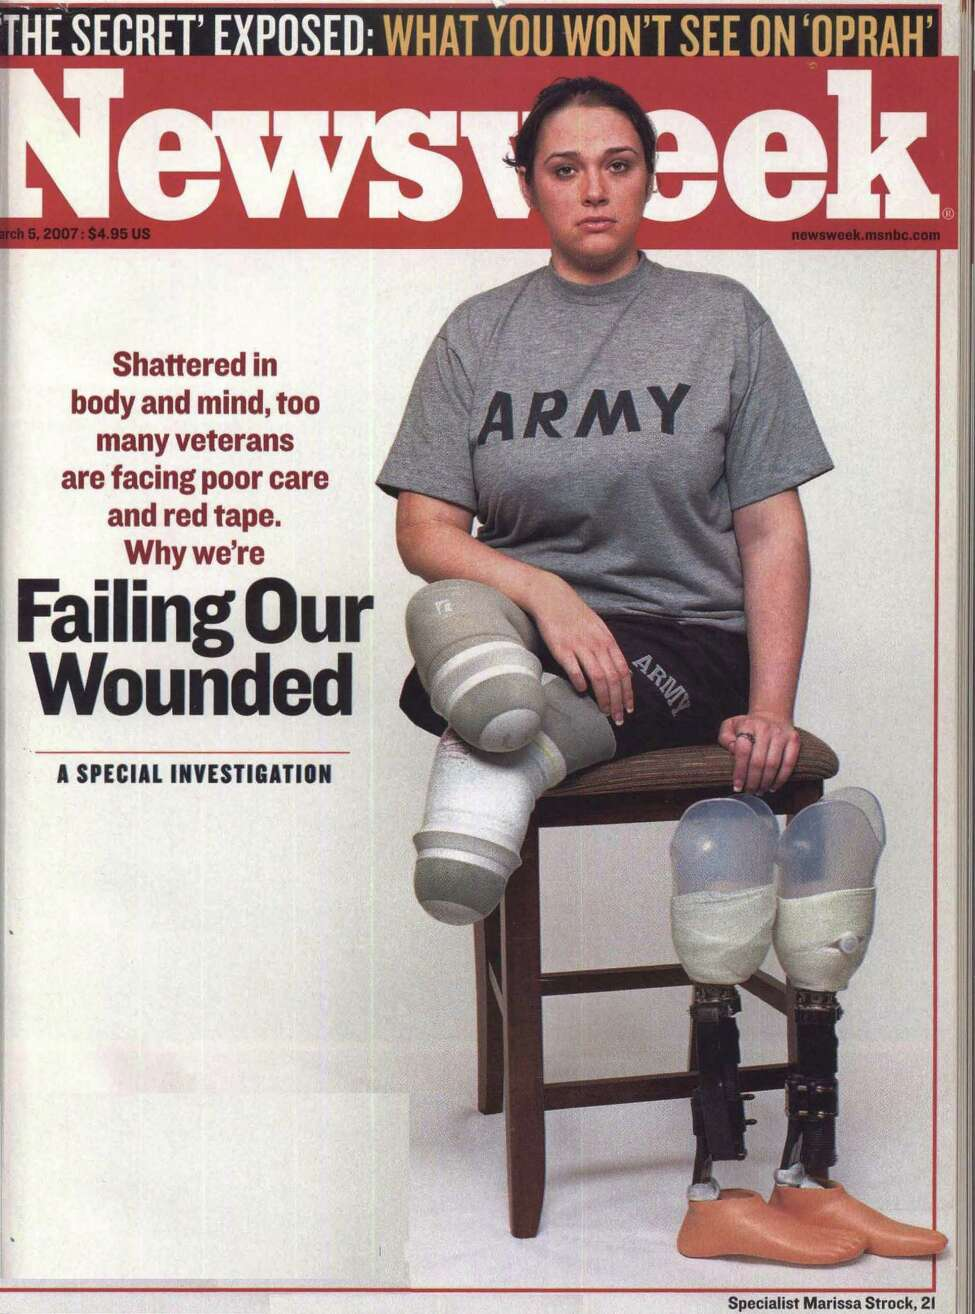 Army specialist Marissa Strock on the cover of the March 5, 2007 issue of Newsweek. The issue featured the investigative report,